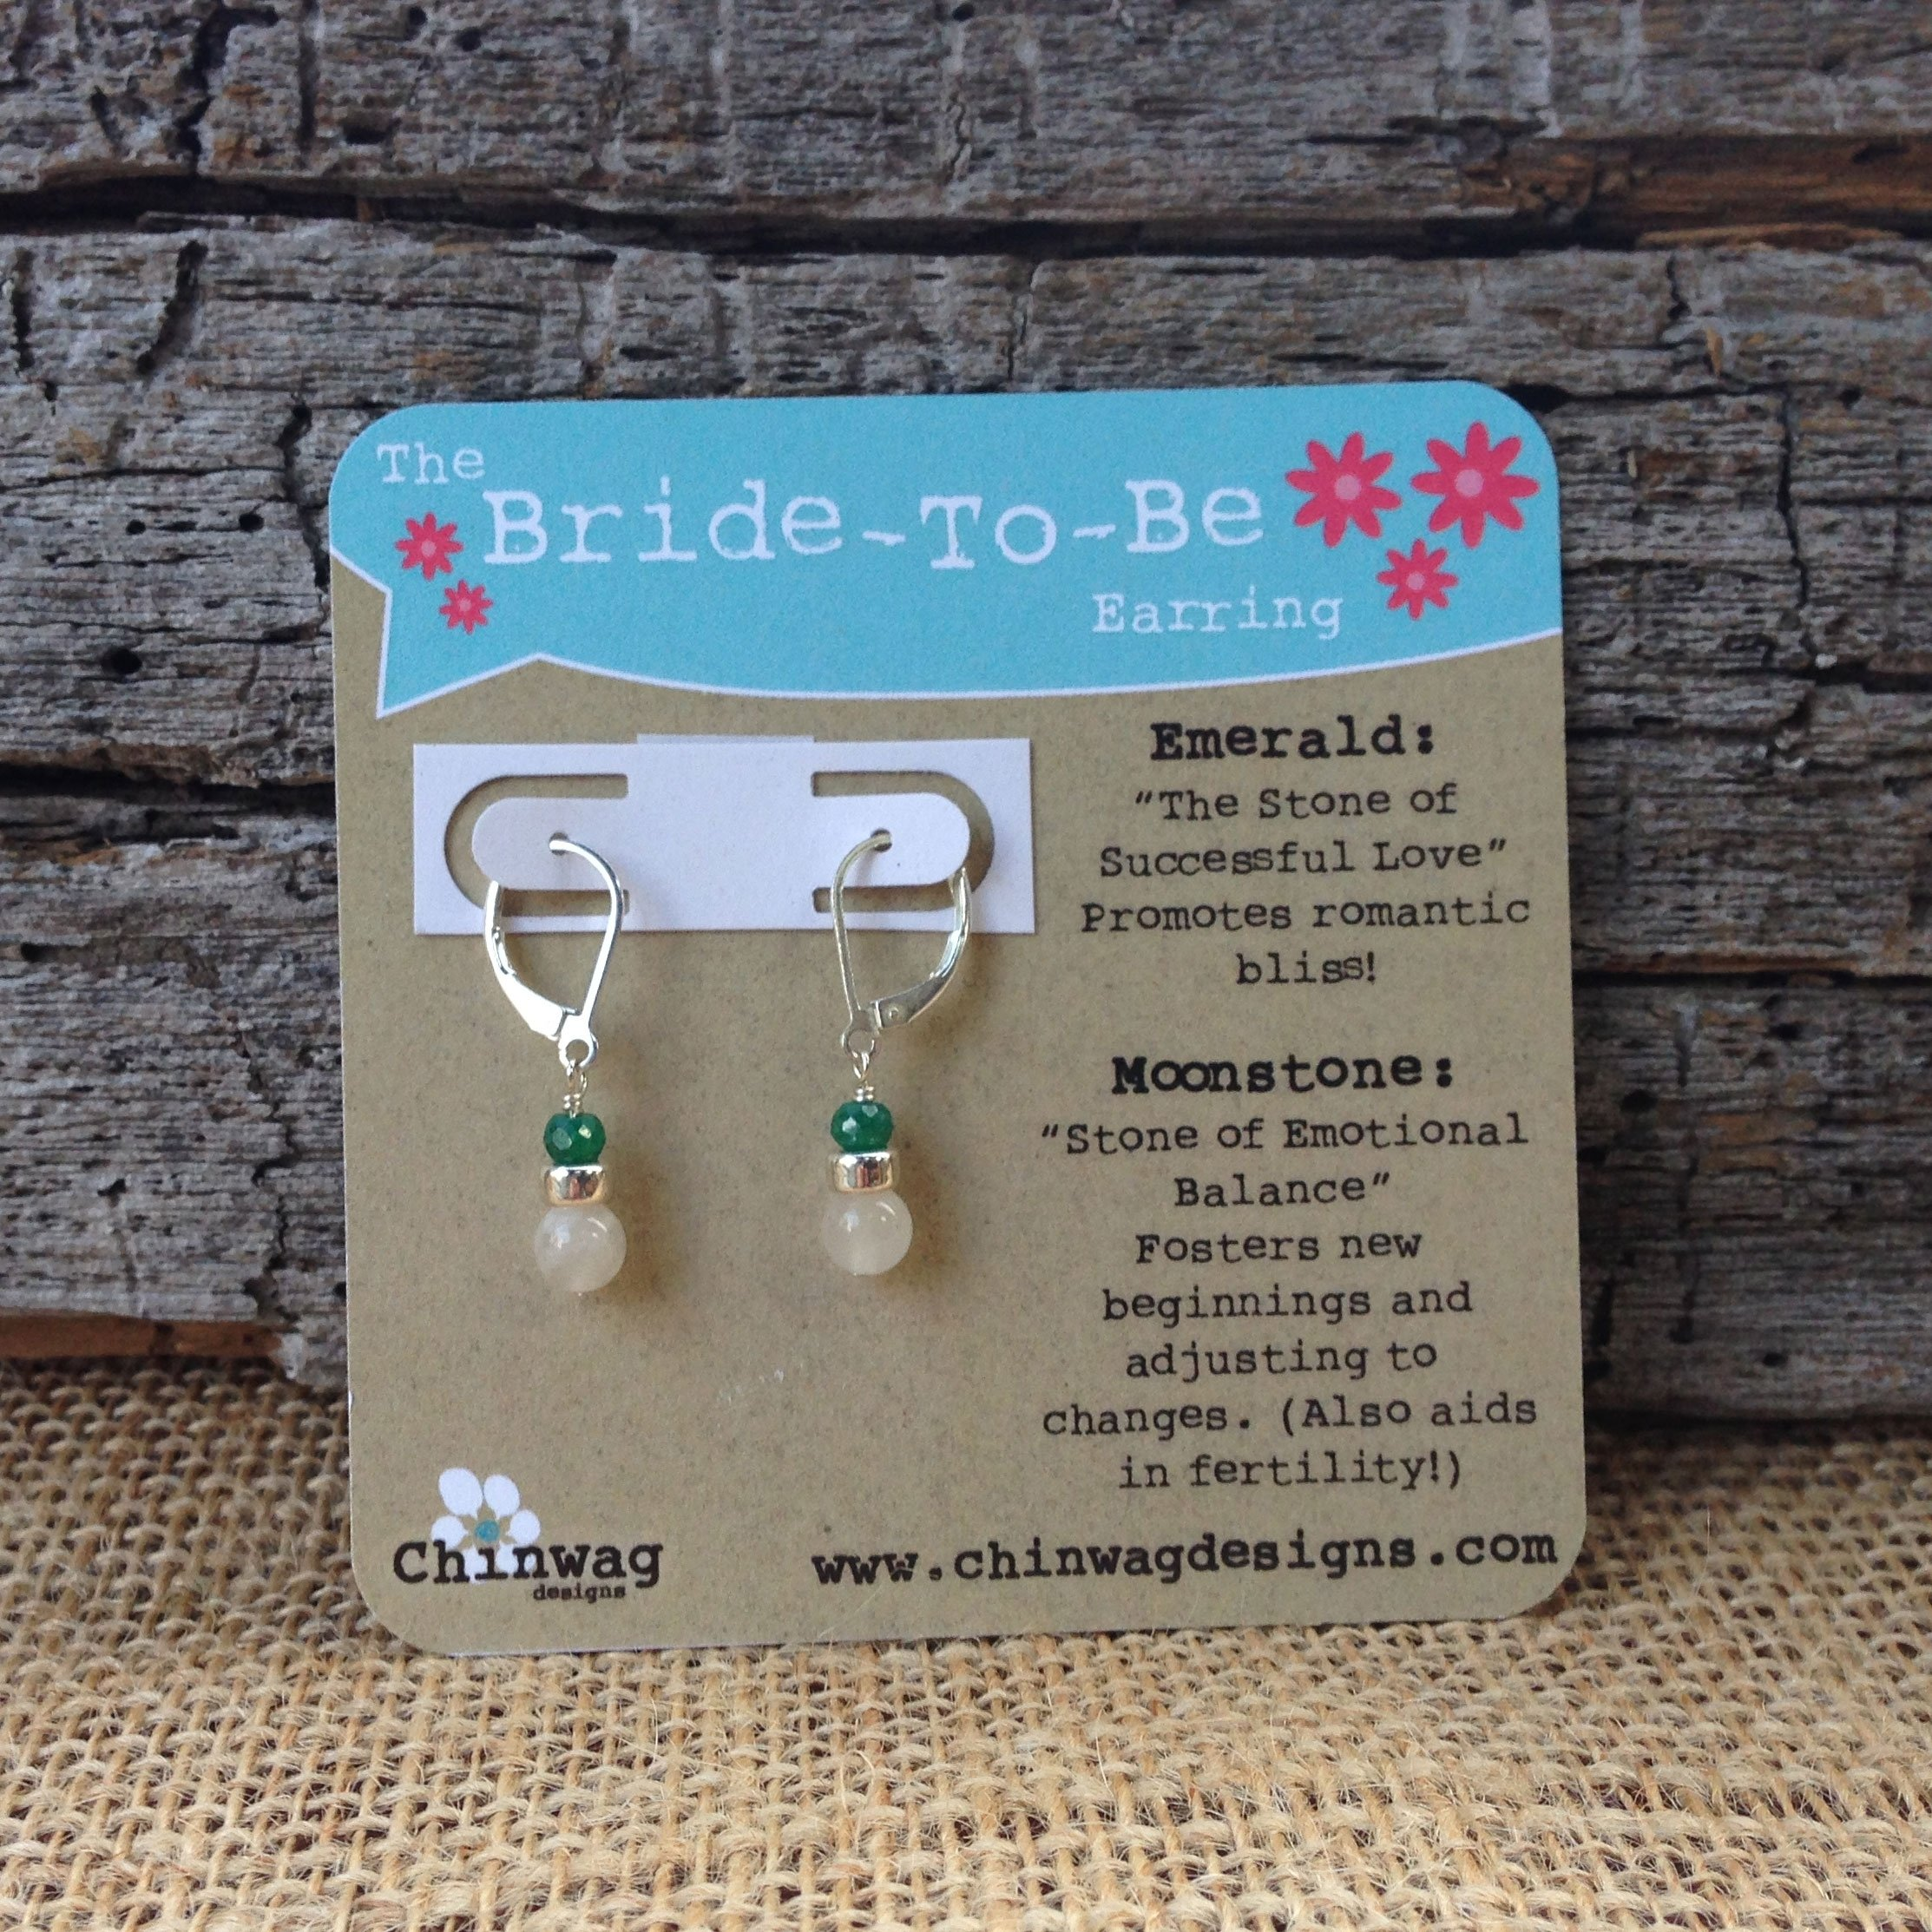 10 Unique Bride To Be Gift Ideas the bride to be earring chinwag designs 1 2020